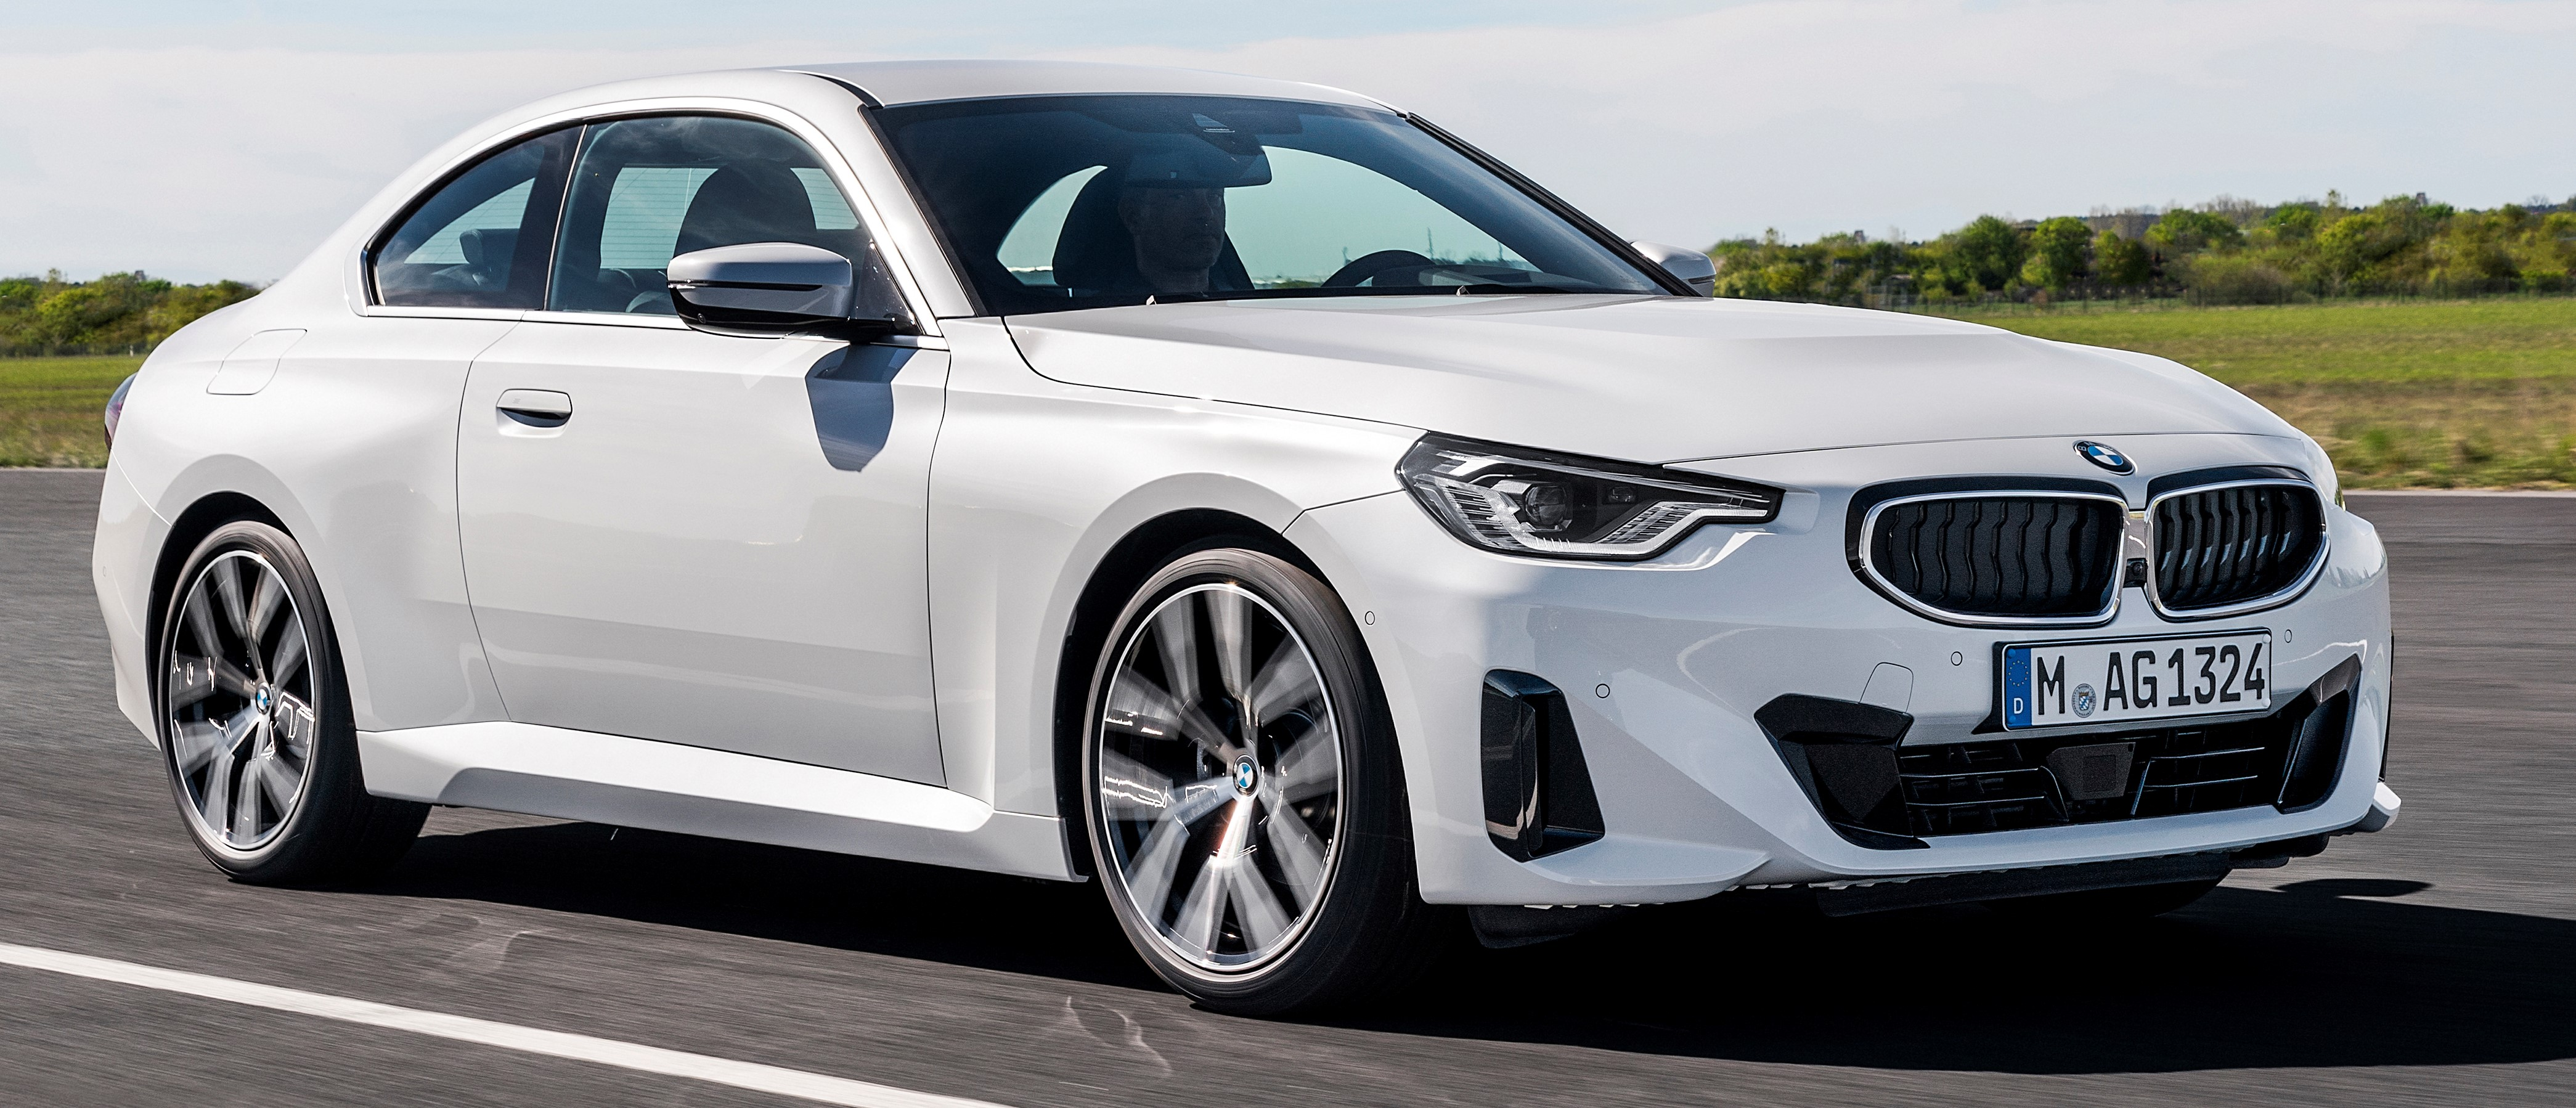 All-new BMW 2 Series Coupe takes a bow